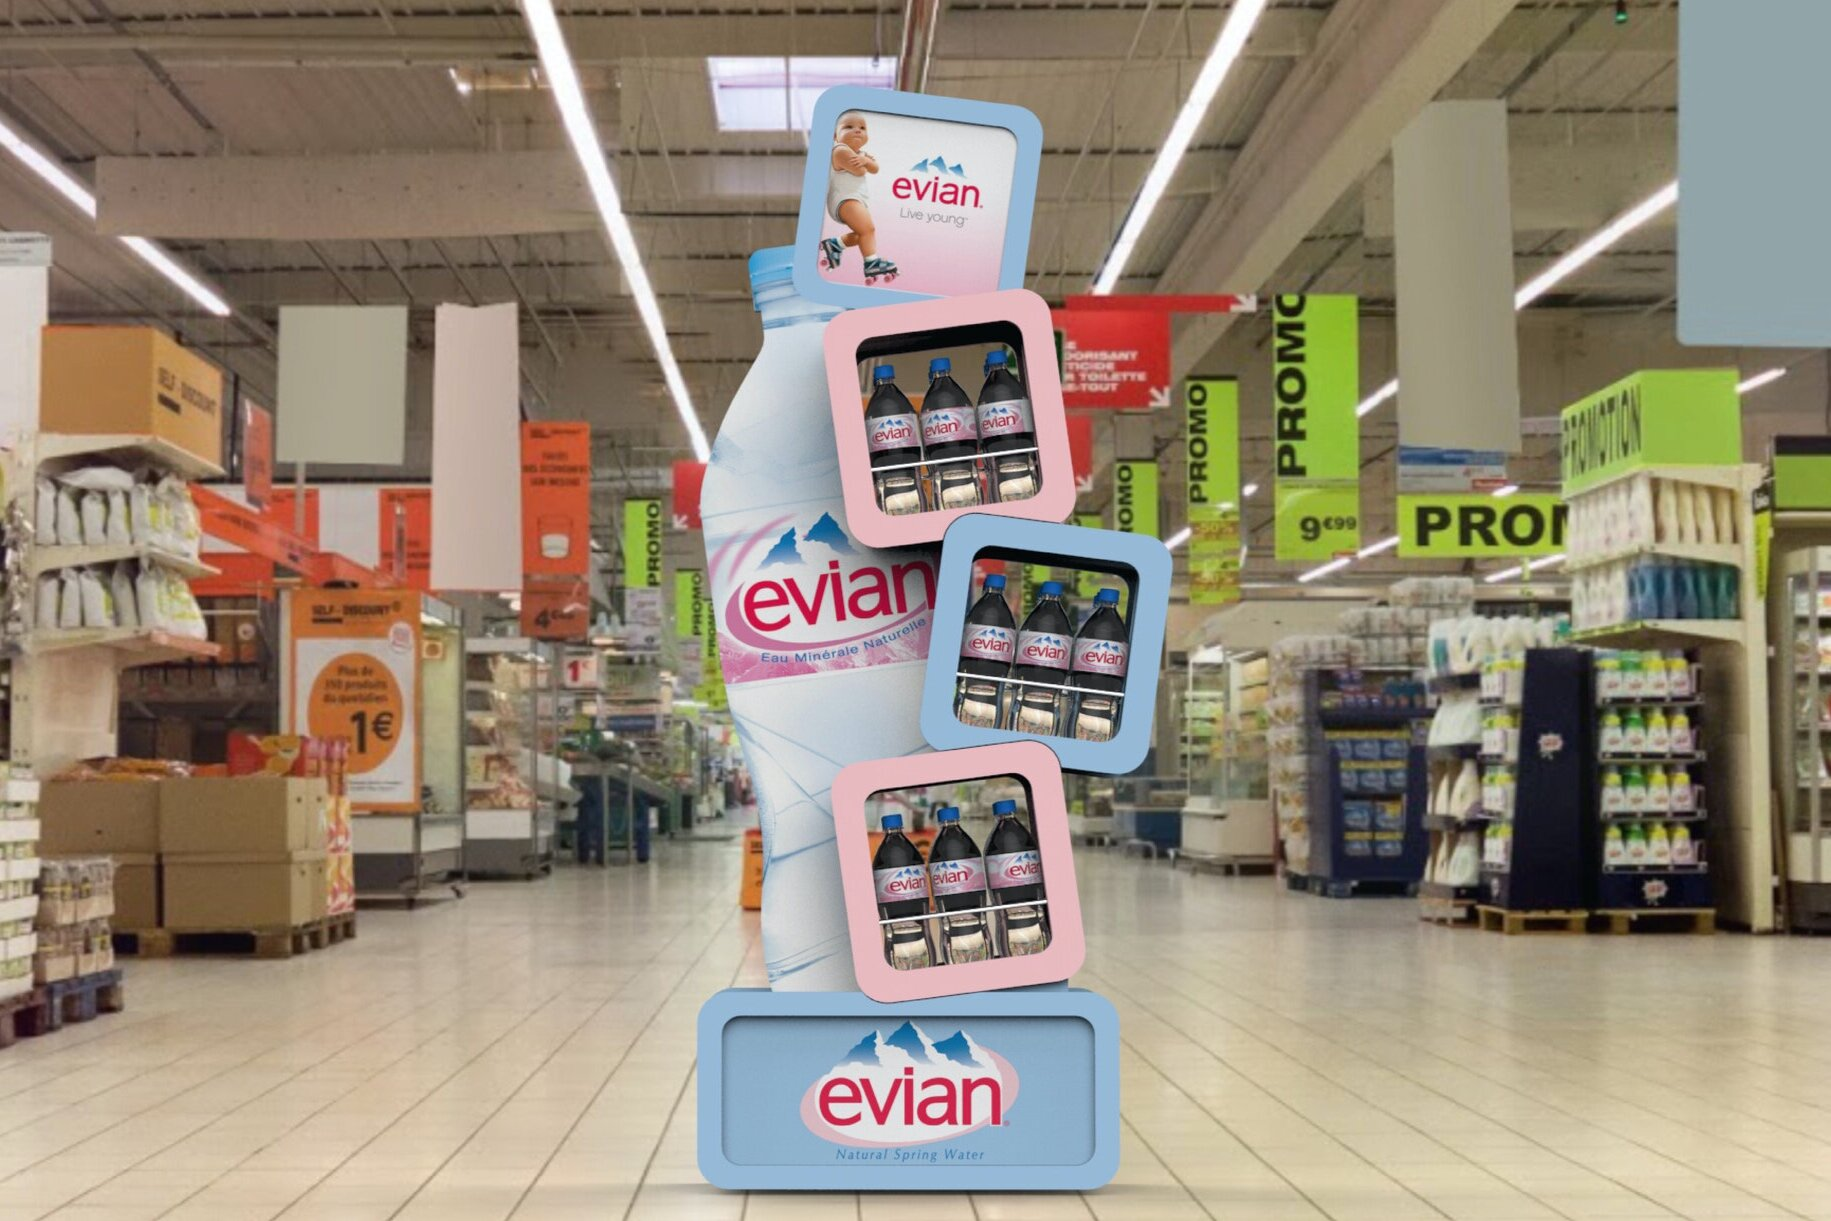 Point of Purchase Displays - For over 30 years, ALVISUAL has been known as the premier design and manufacturing company of high- quality POP Displays.Learn more